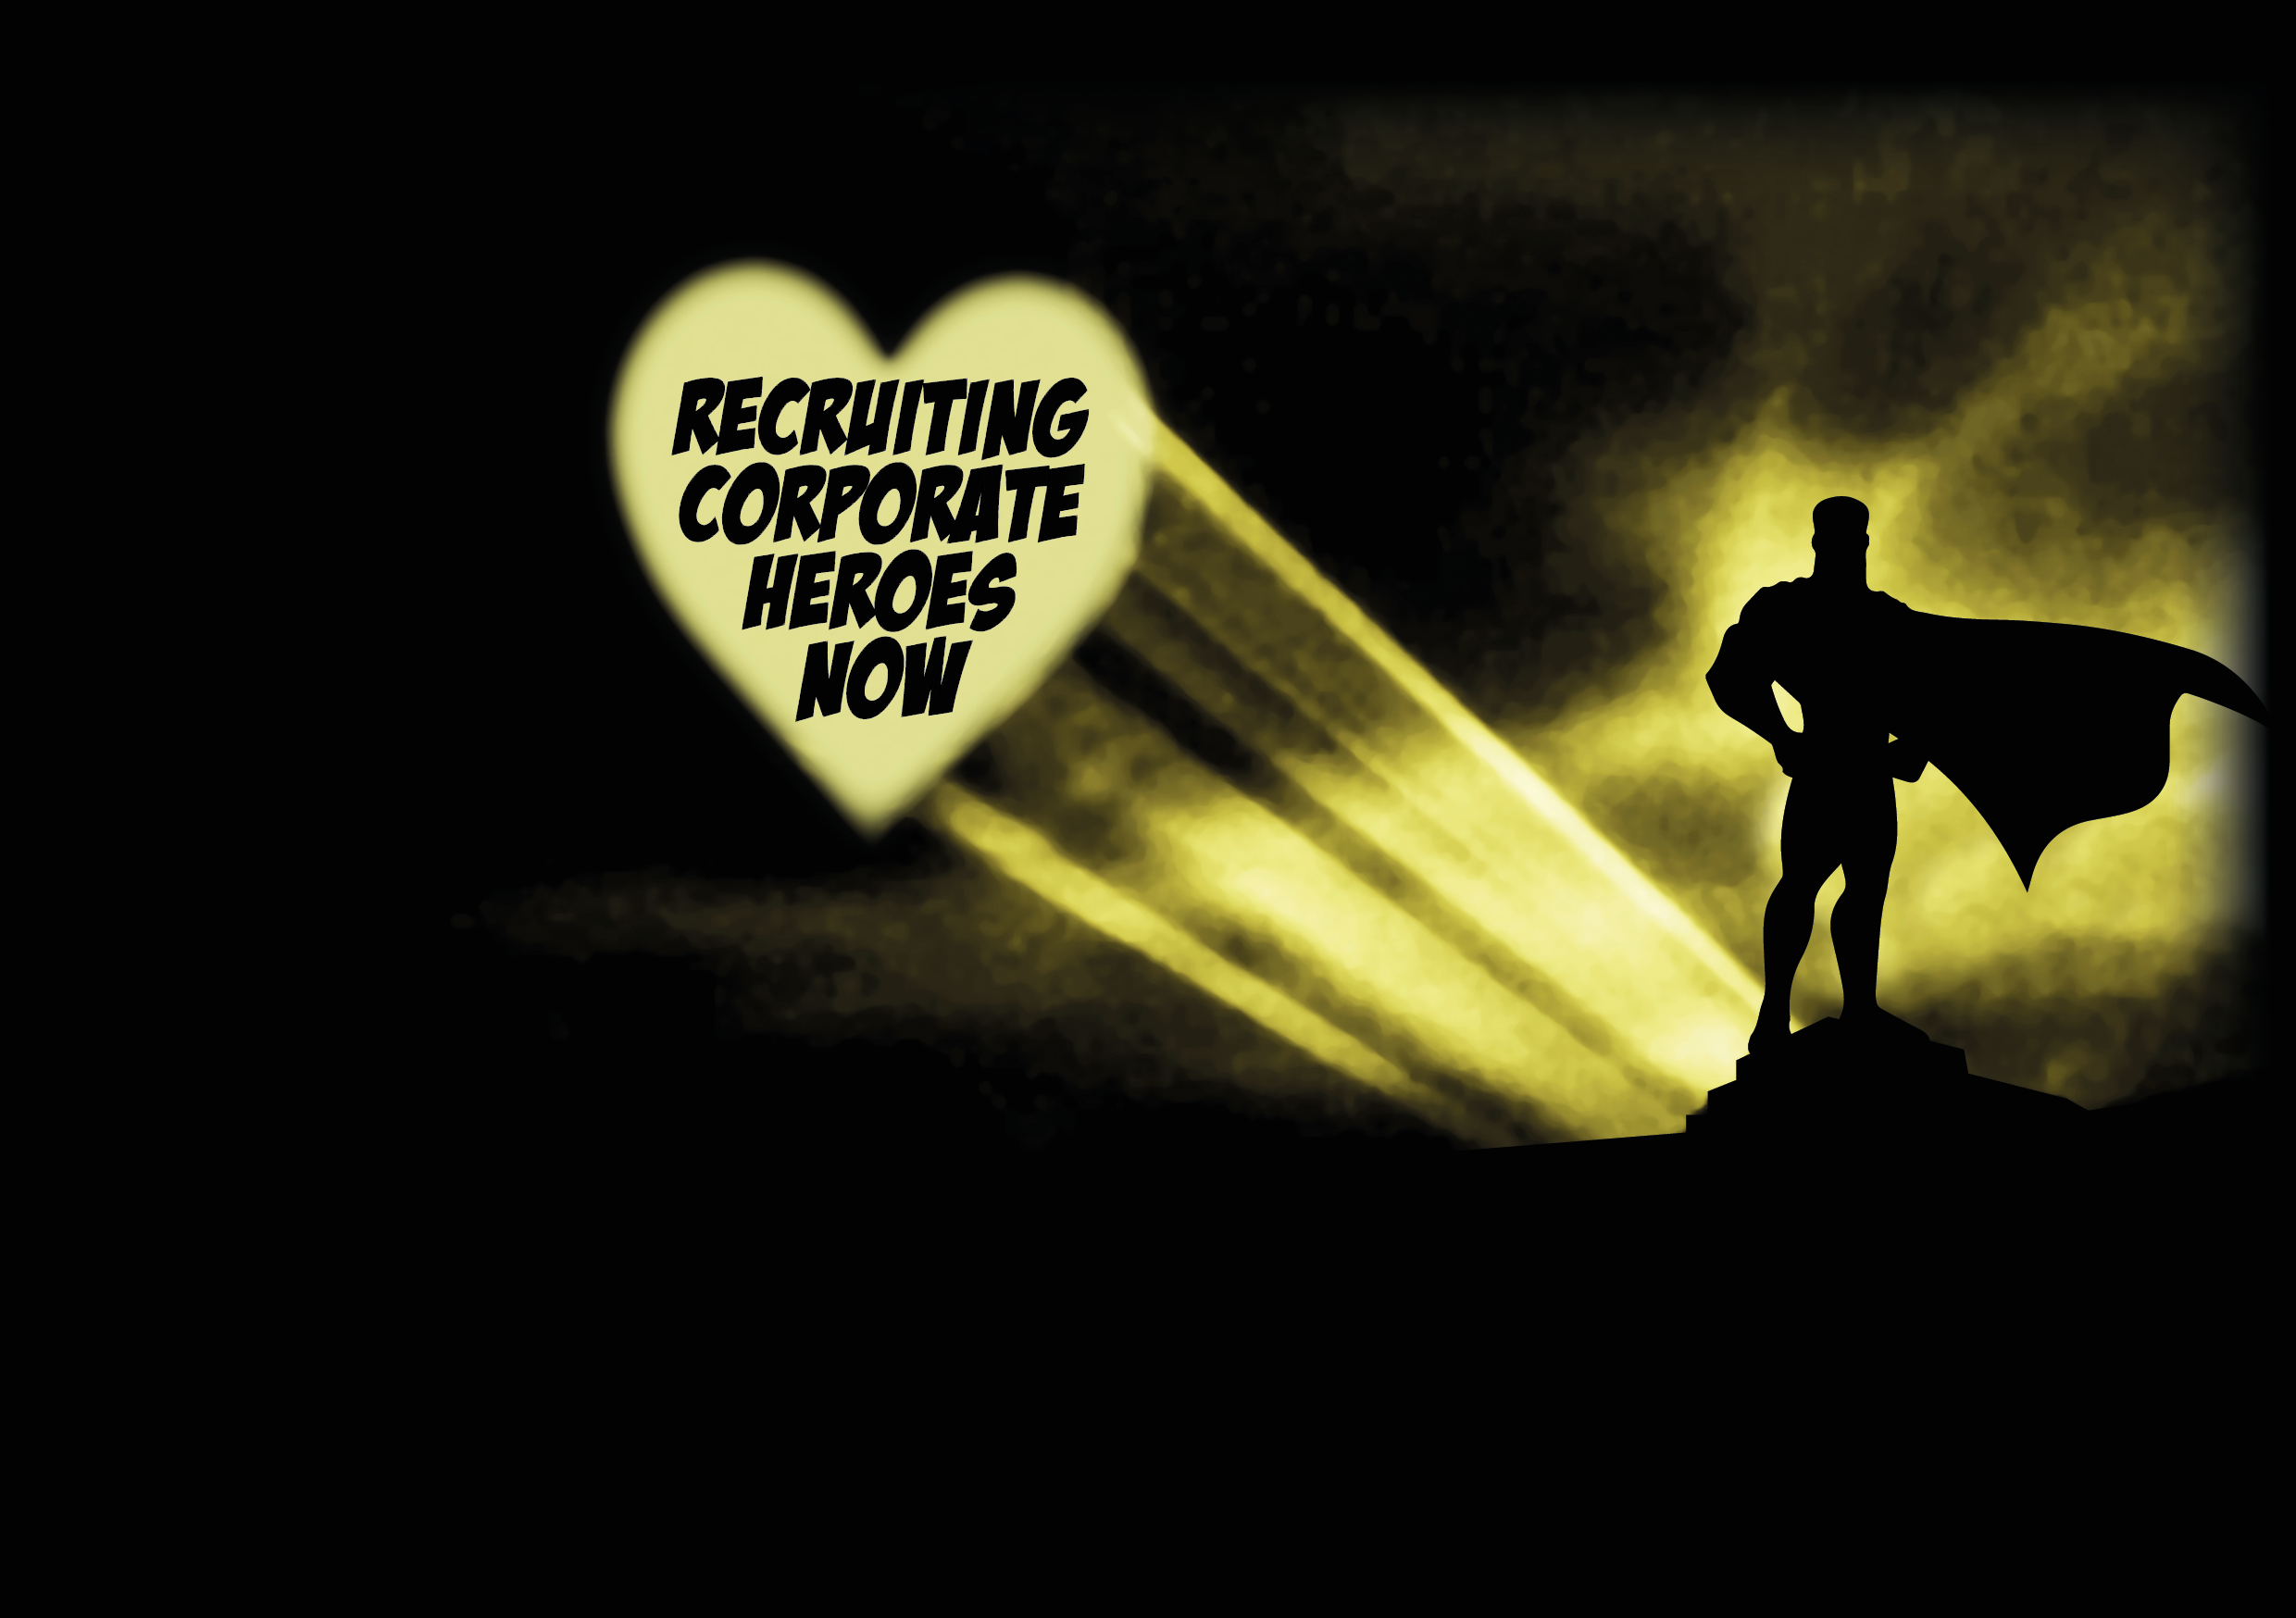 Recruiting Corporate Heroes Silhouette (4)